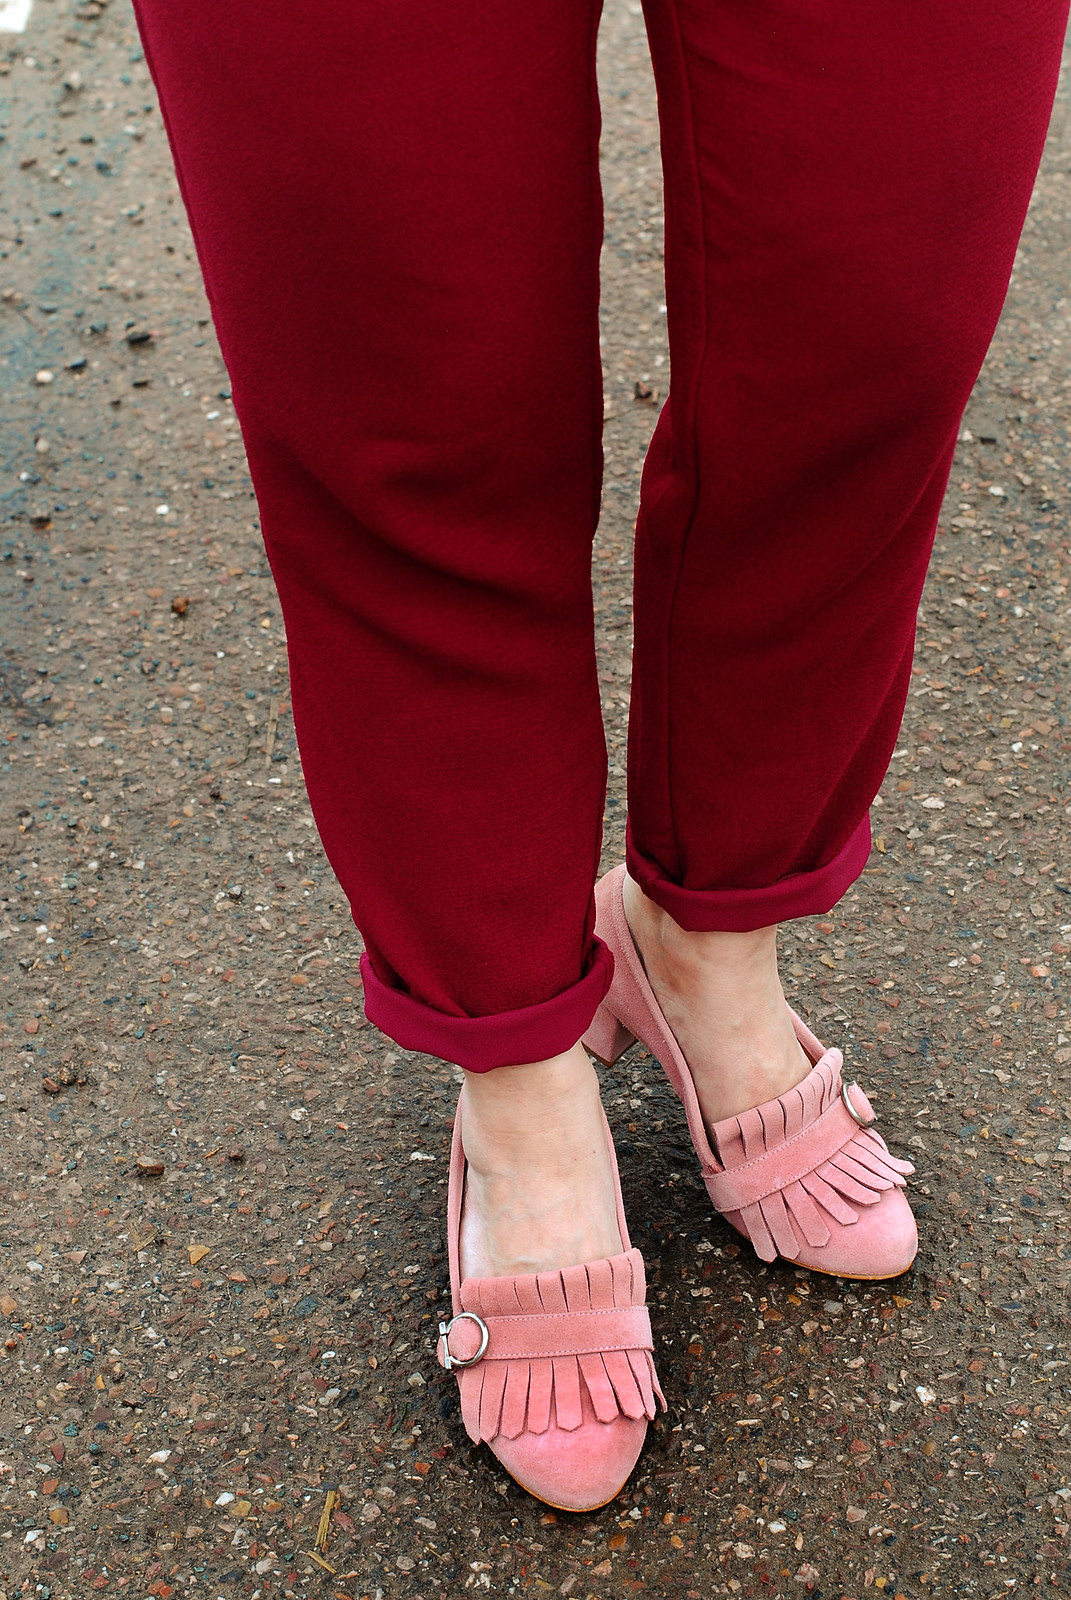 Simple dressing: Plum/burgundy jumpsuit \ pink suede block heel shoes \ frilled choker | Not Dressed As Lamb, over 40 style